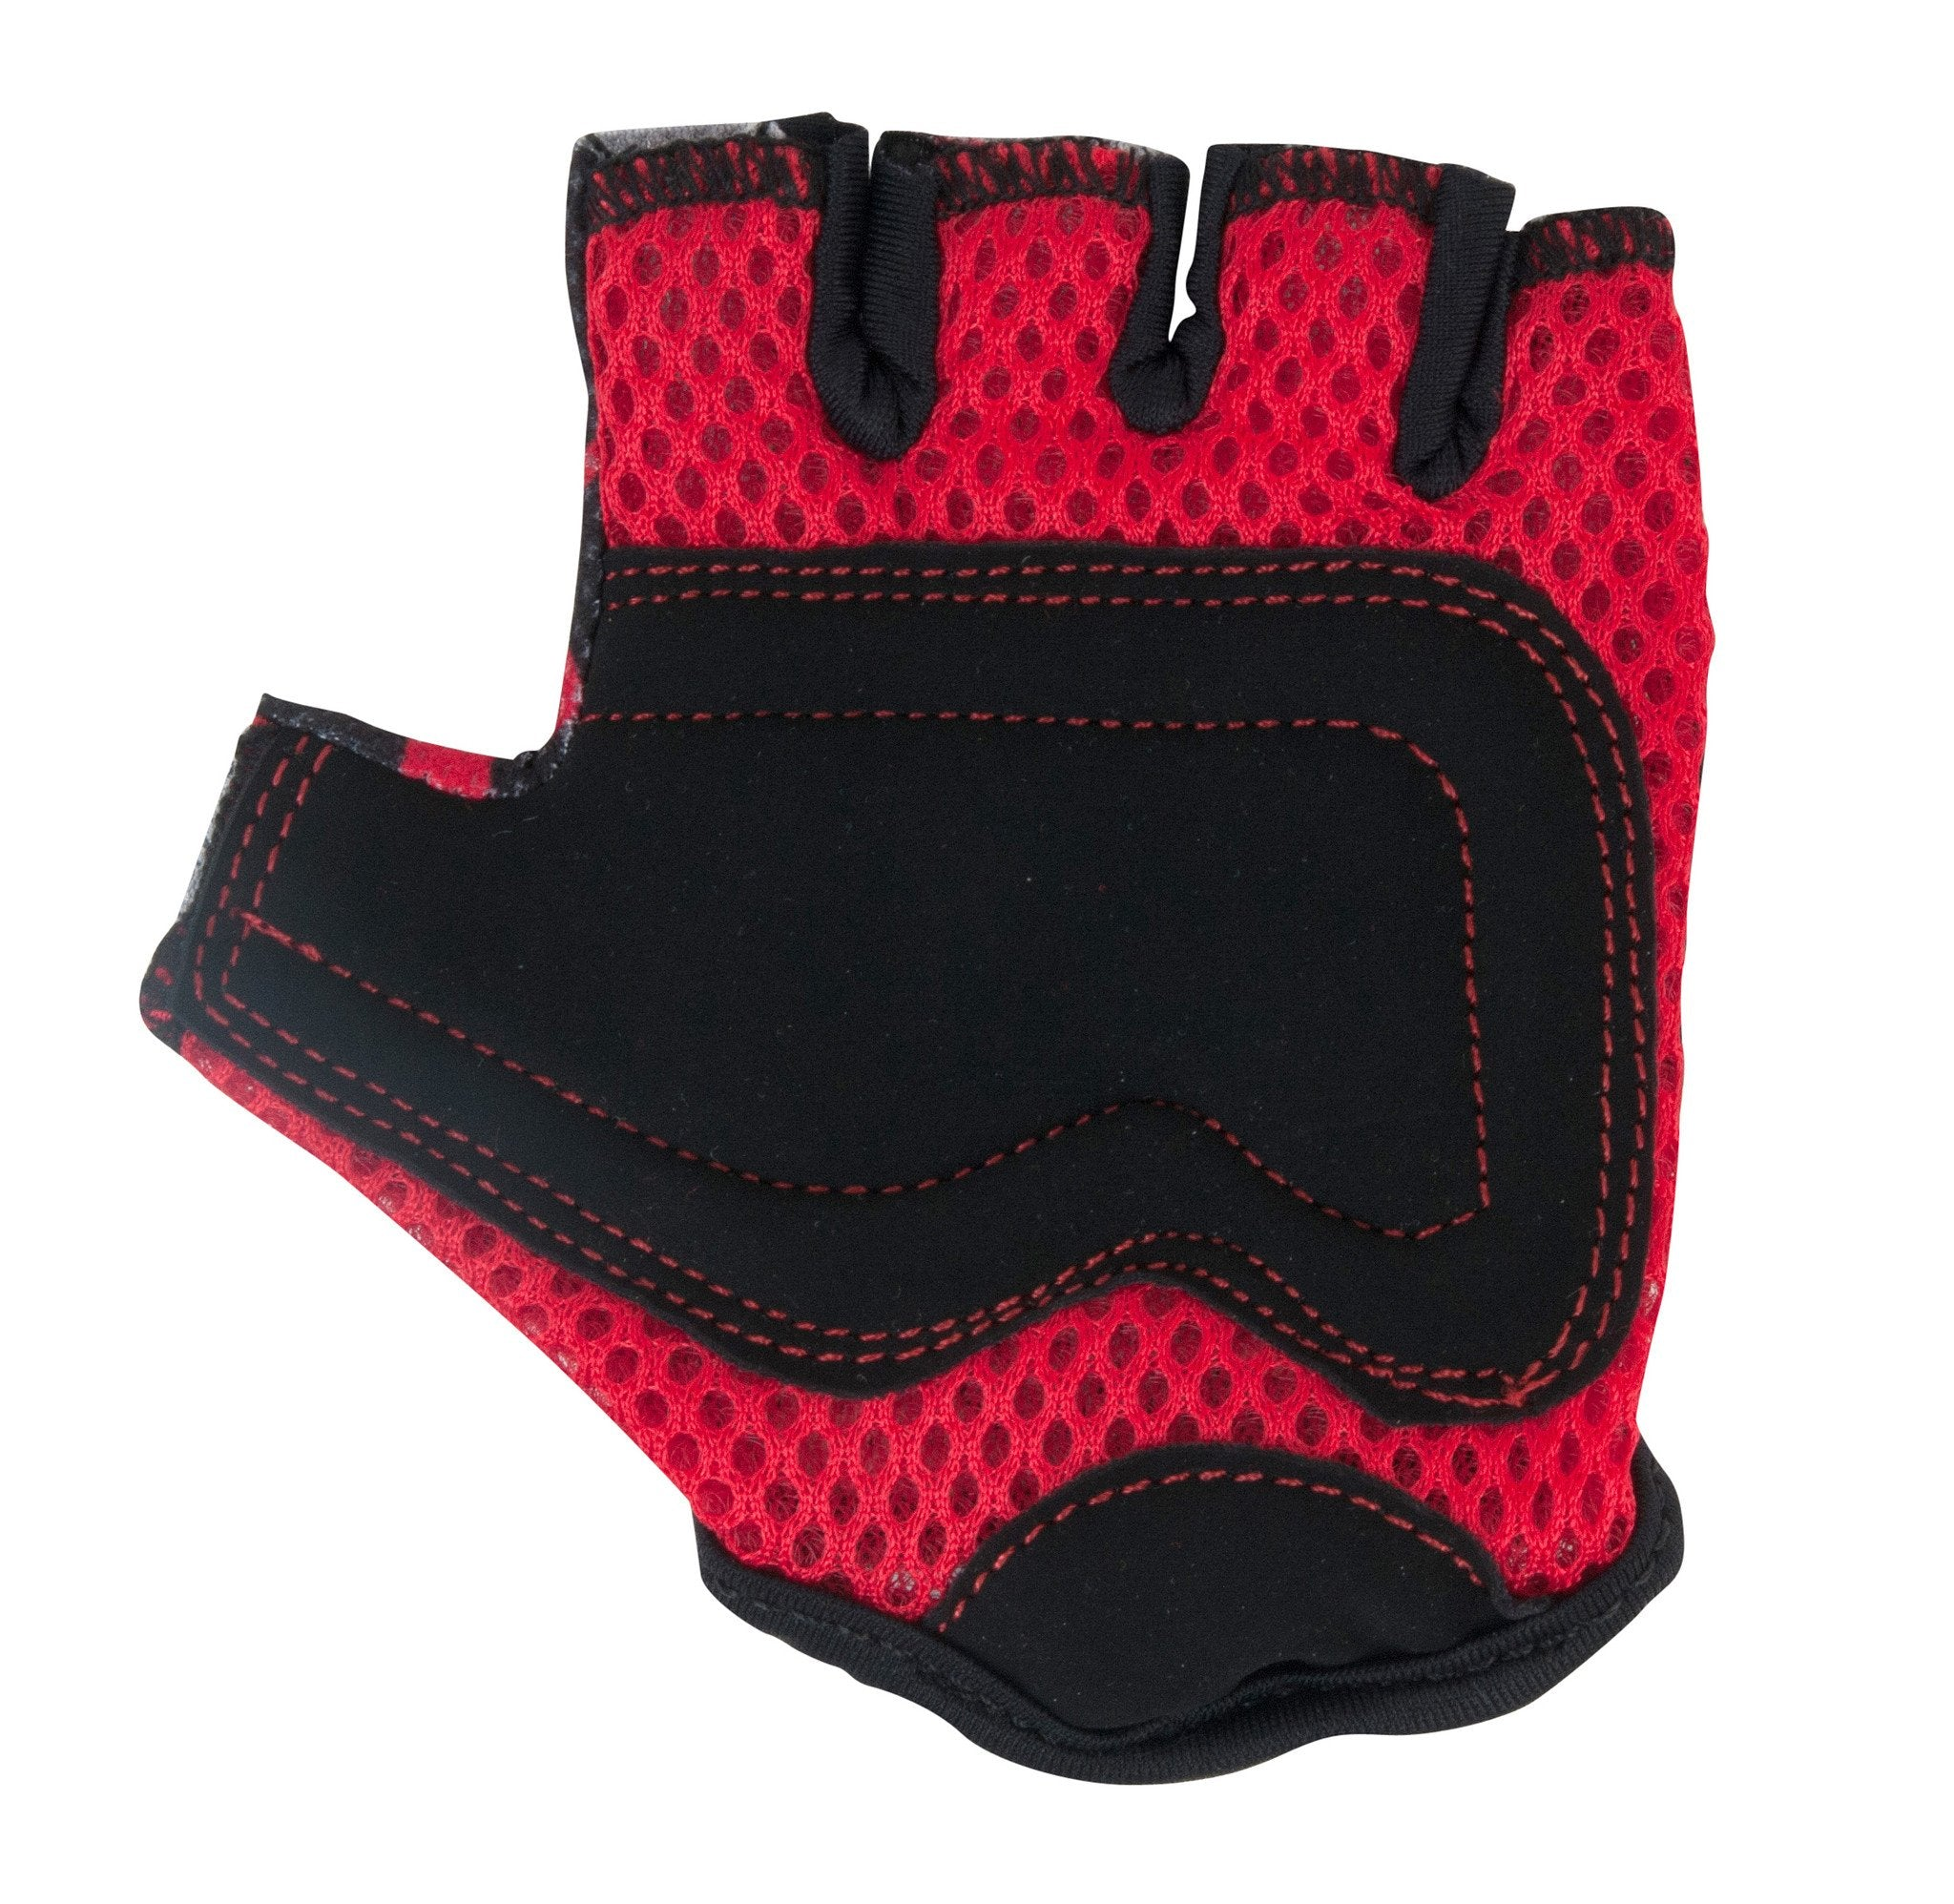 Flames Gloves - Kiddimoto